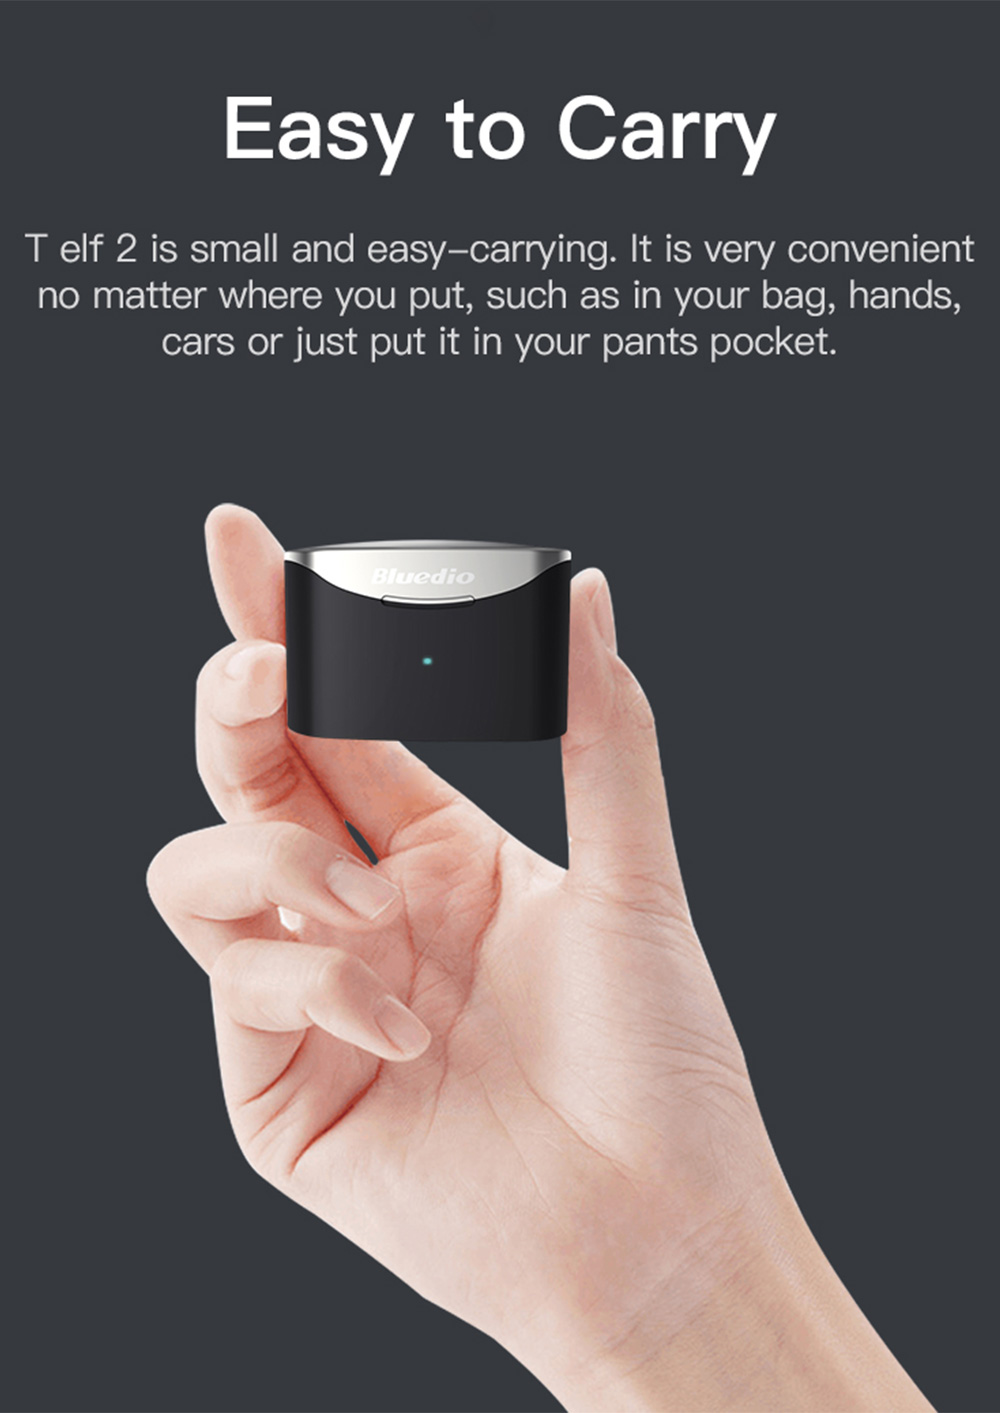 Bluedio T Elf 2 Bluetooth 5.0 TWS Earphones 6 Hours Playtime IPX6 Volume Touch Control Type-C Charing - Black